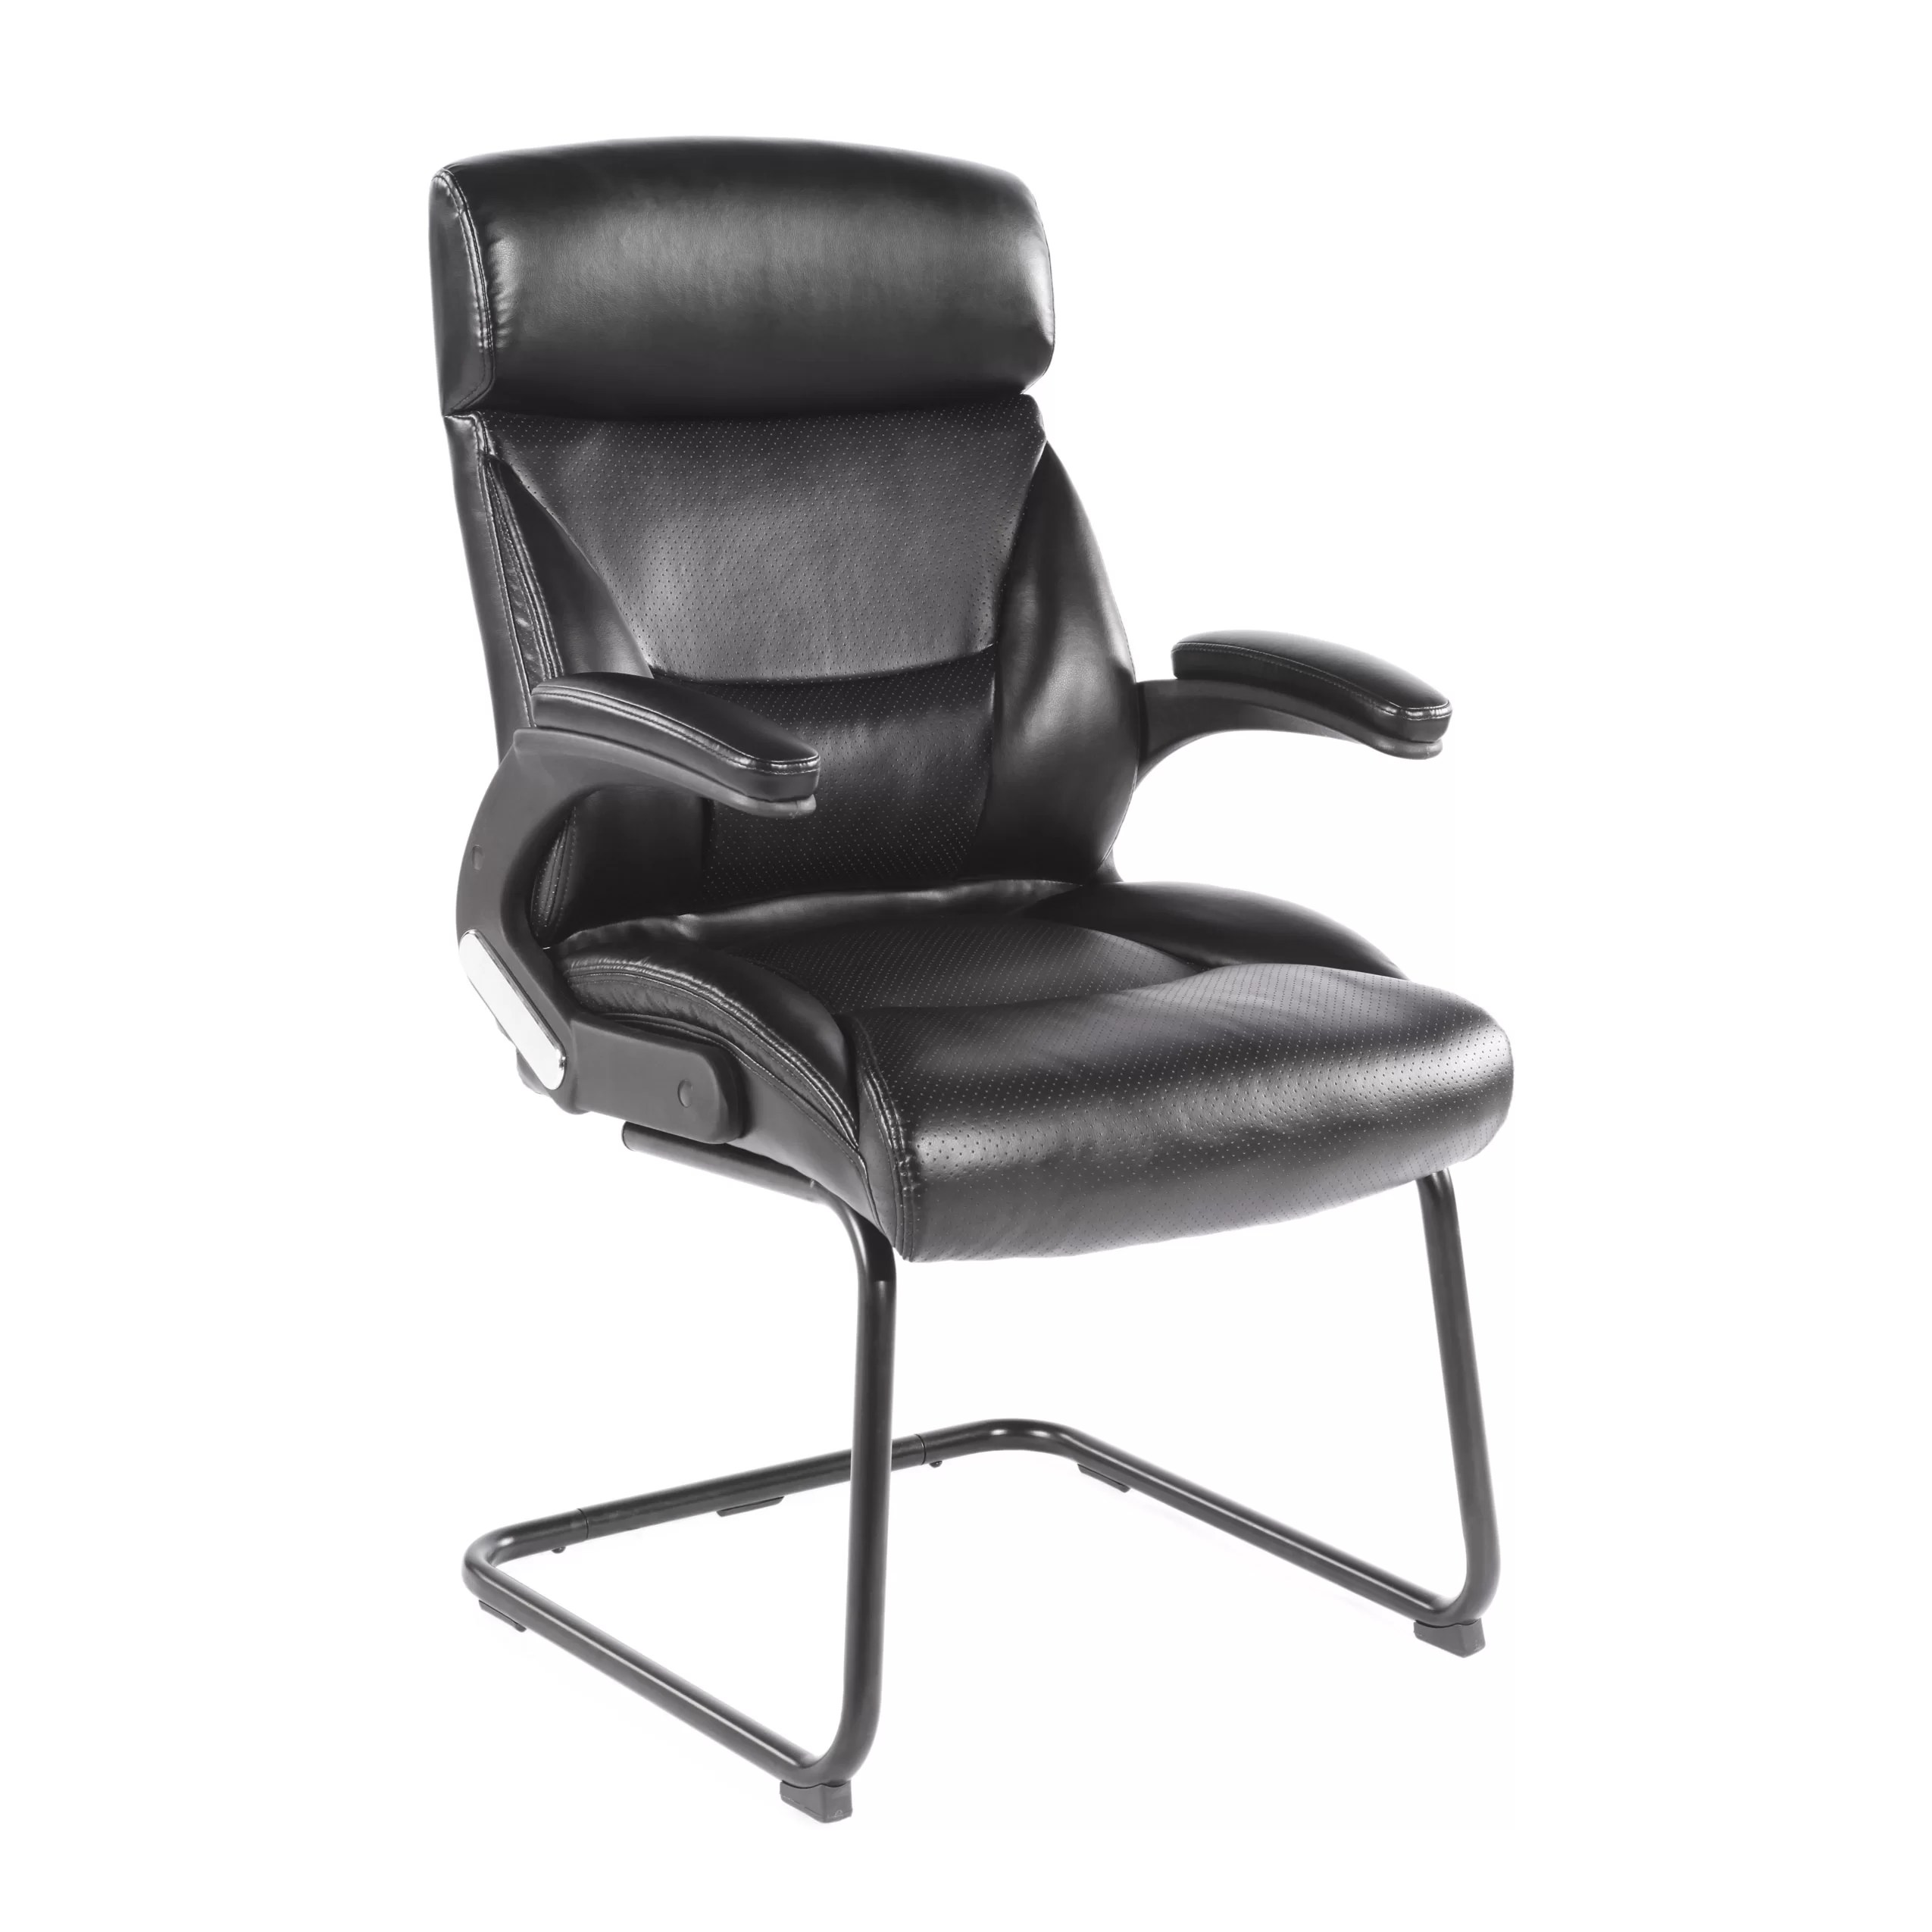 Office Guest Chair Corliving Workspace Office Guest Chair Wayfair